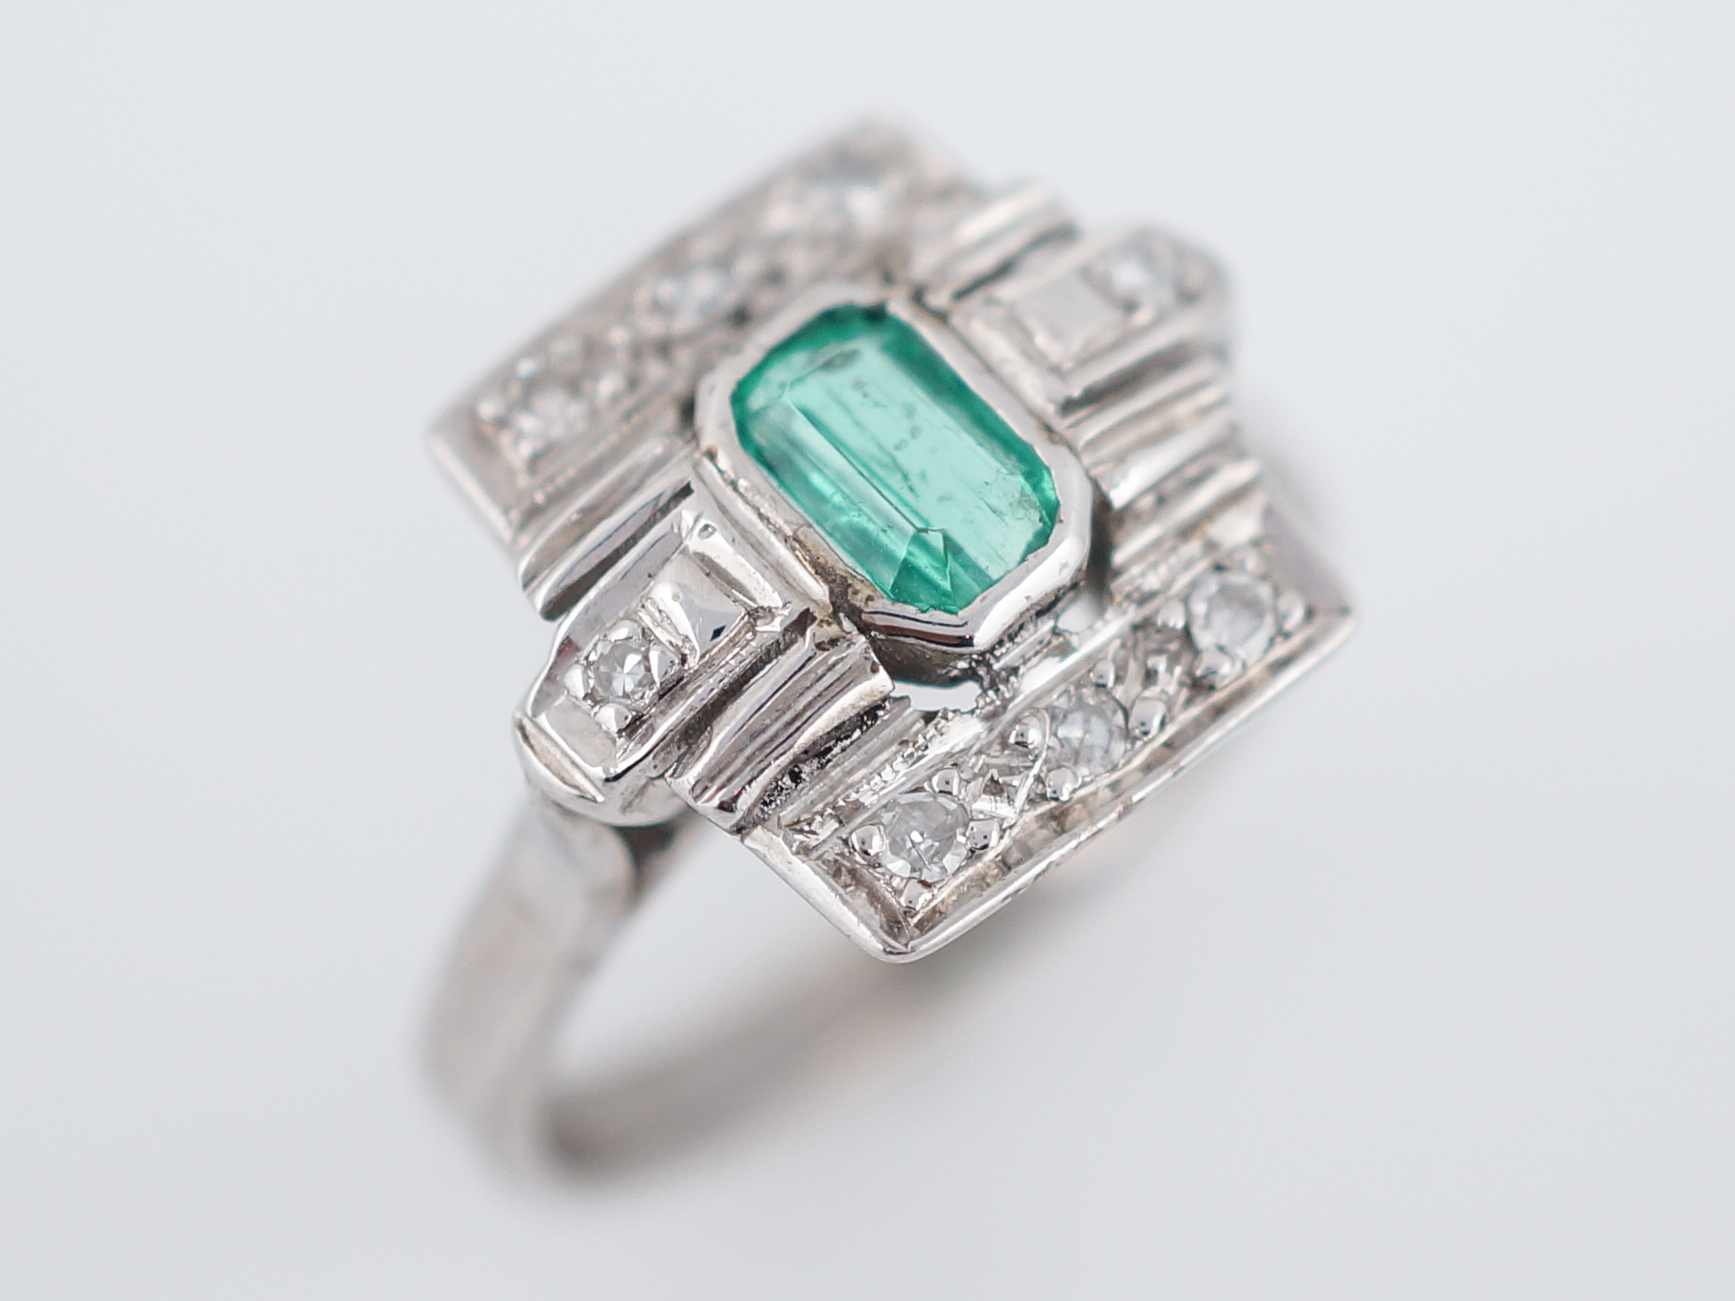 ring rings bespoke specific diamond exchange london emerald